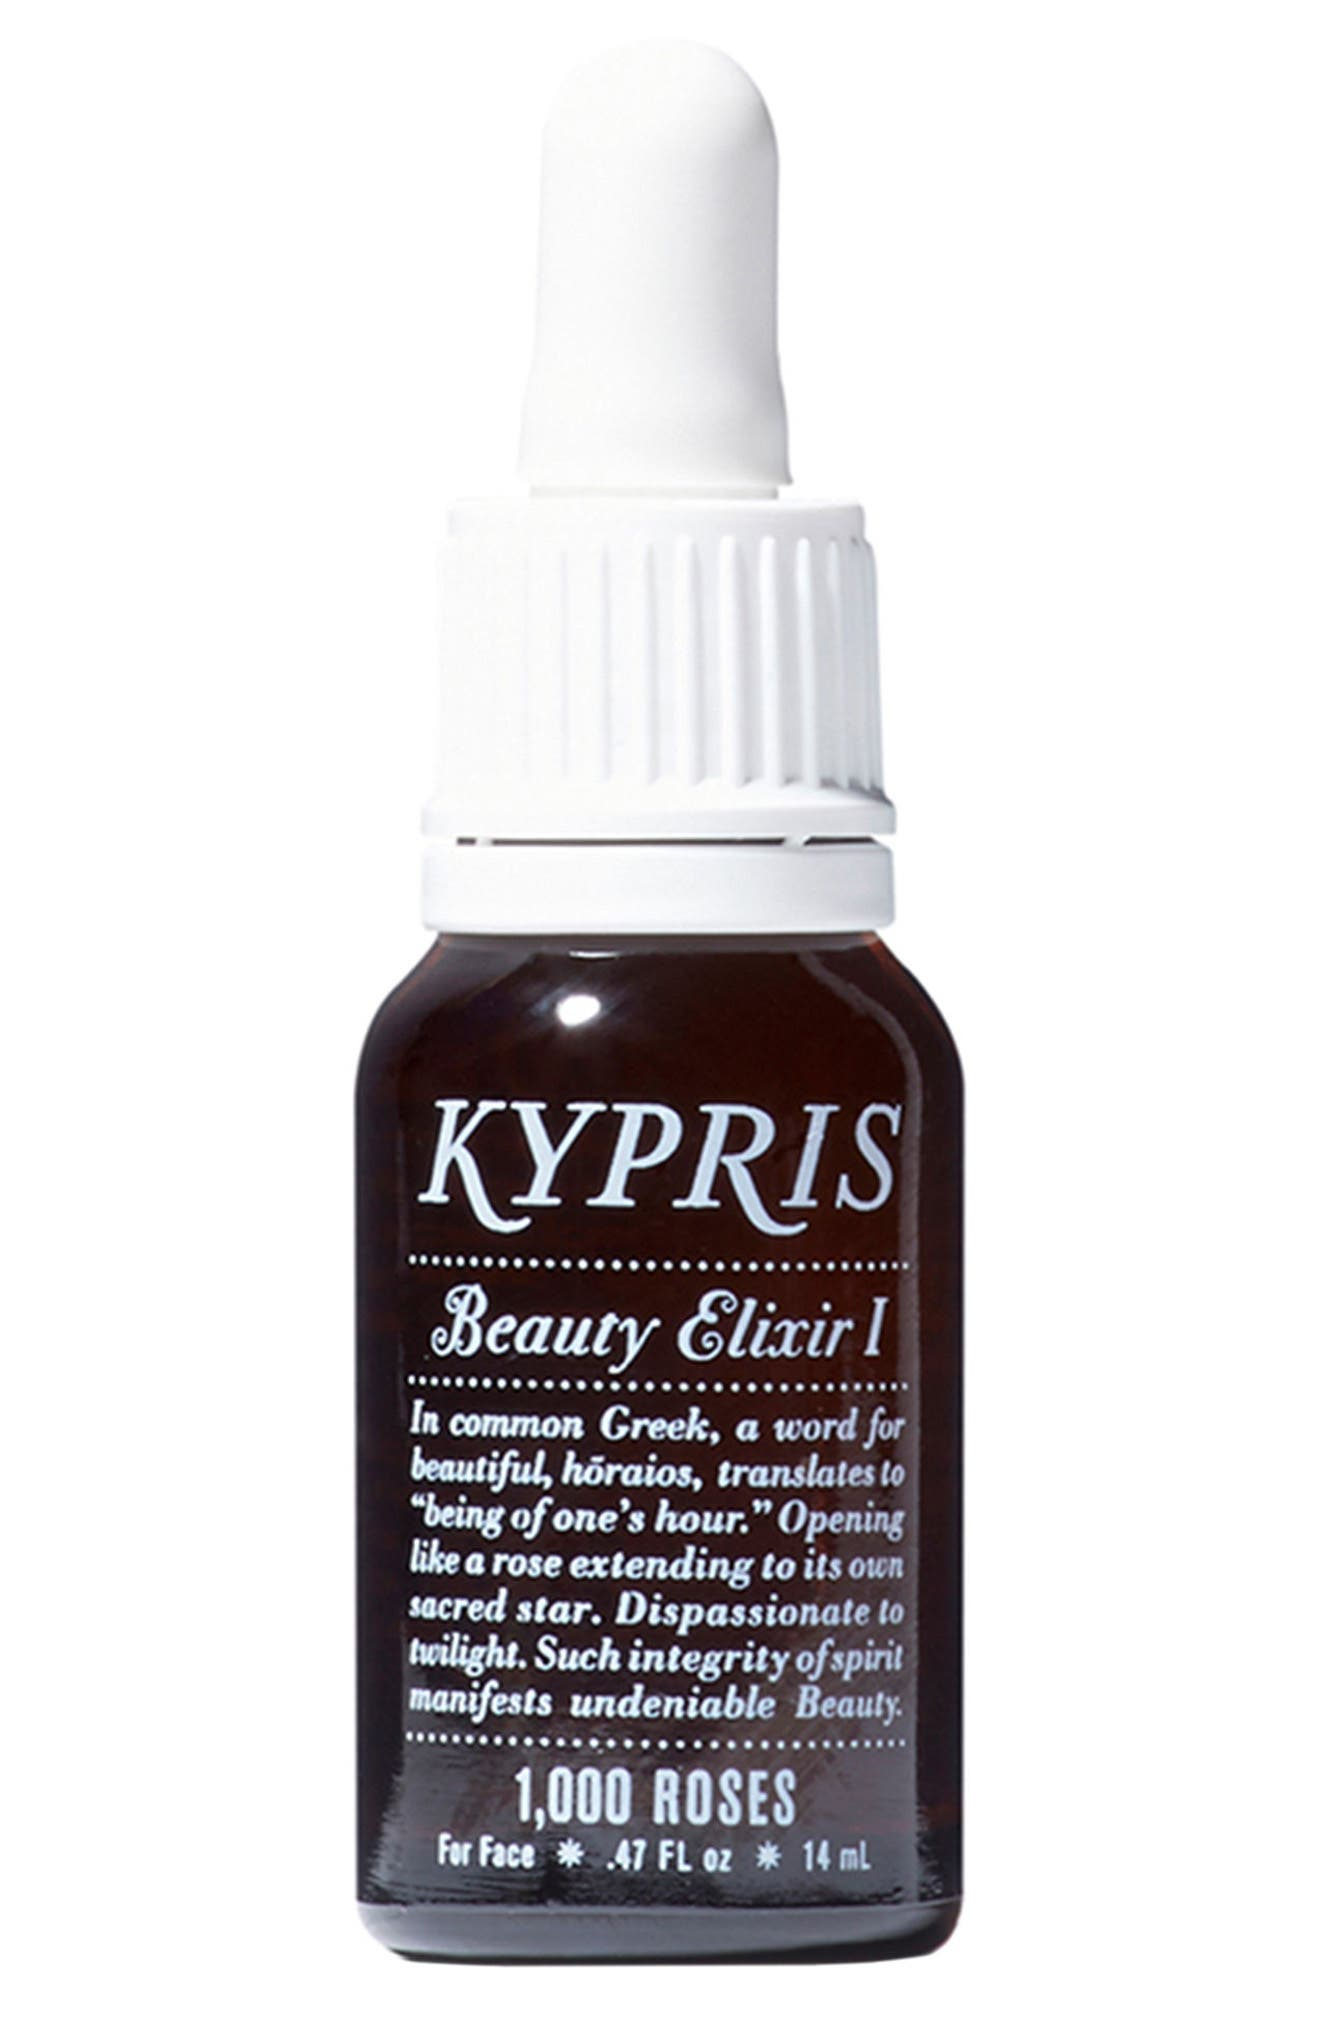 KYPRIS BEAUTY Beauty Elixir I: 1000 Roses, Main, color, NO COLOR